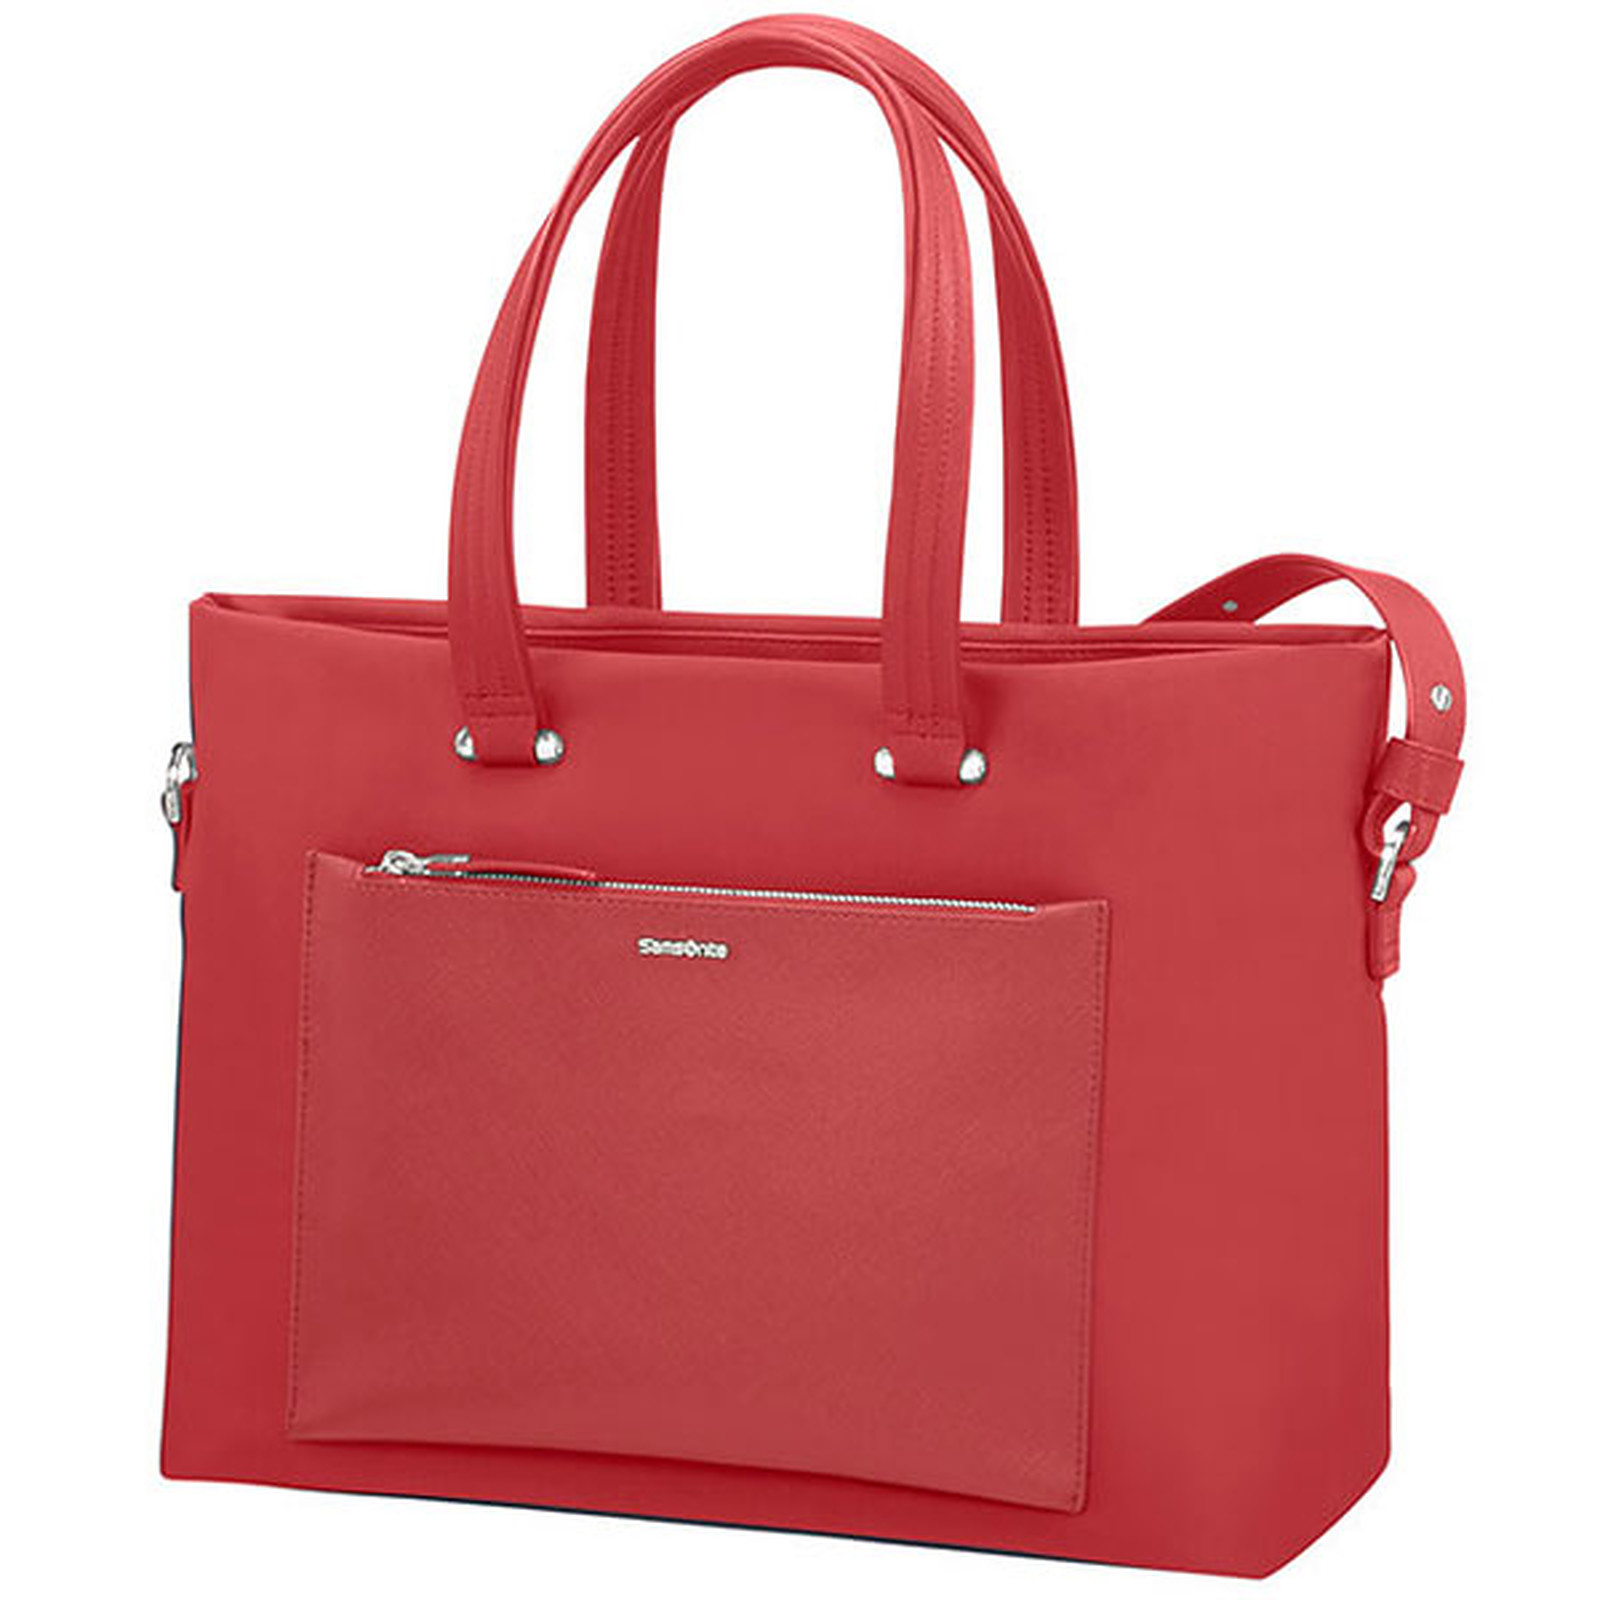 Samsonite Zalia Sac Cabas Rouge